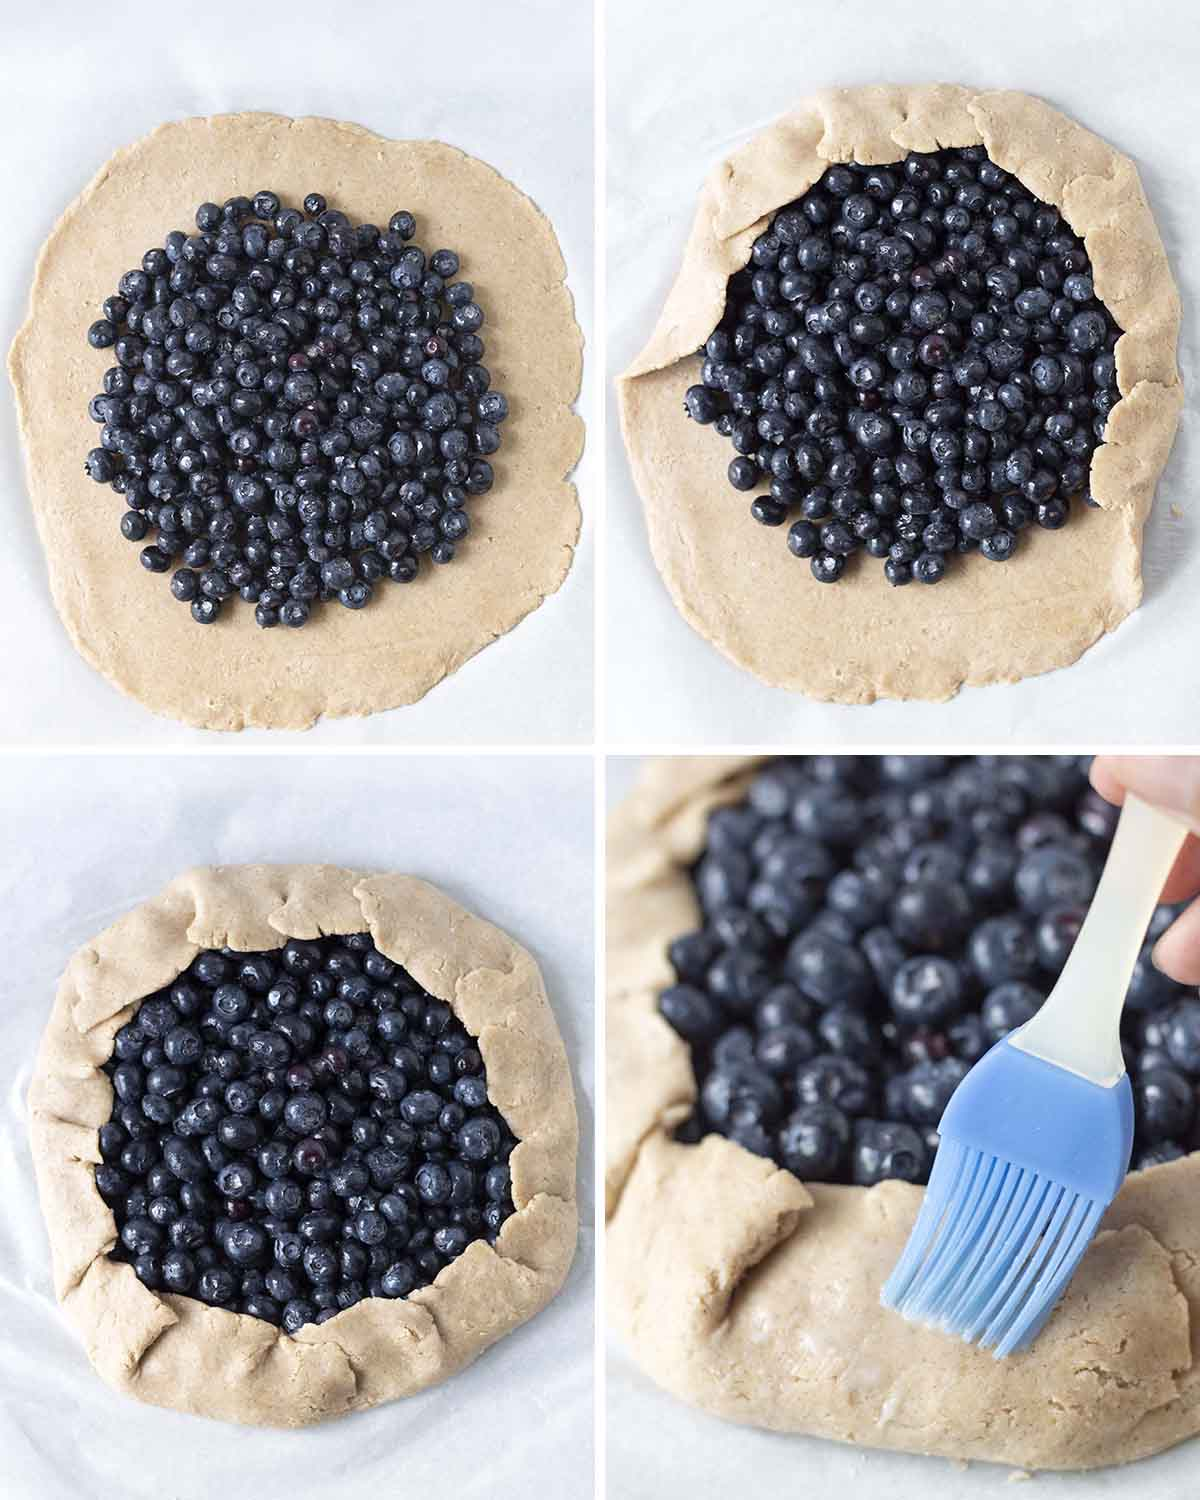 A collage of four images showing the third sequence of steps needed to make a gluten free blueberry galette.